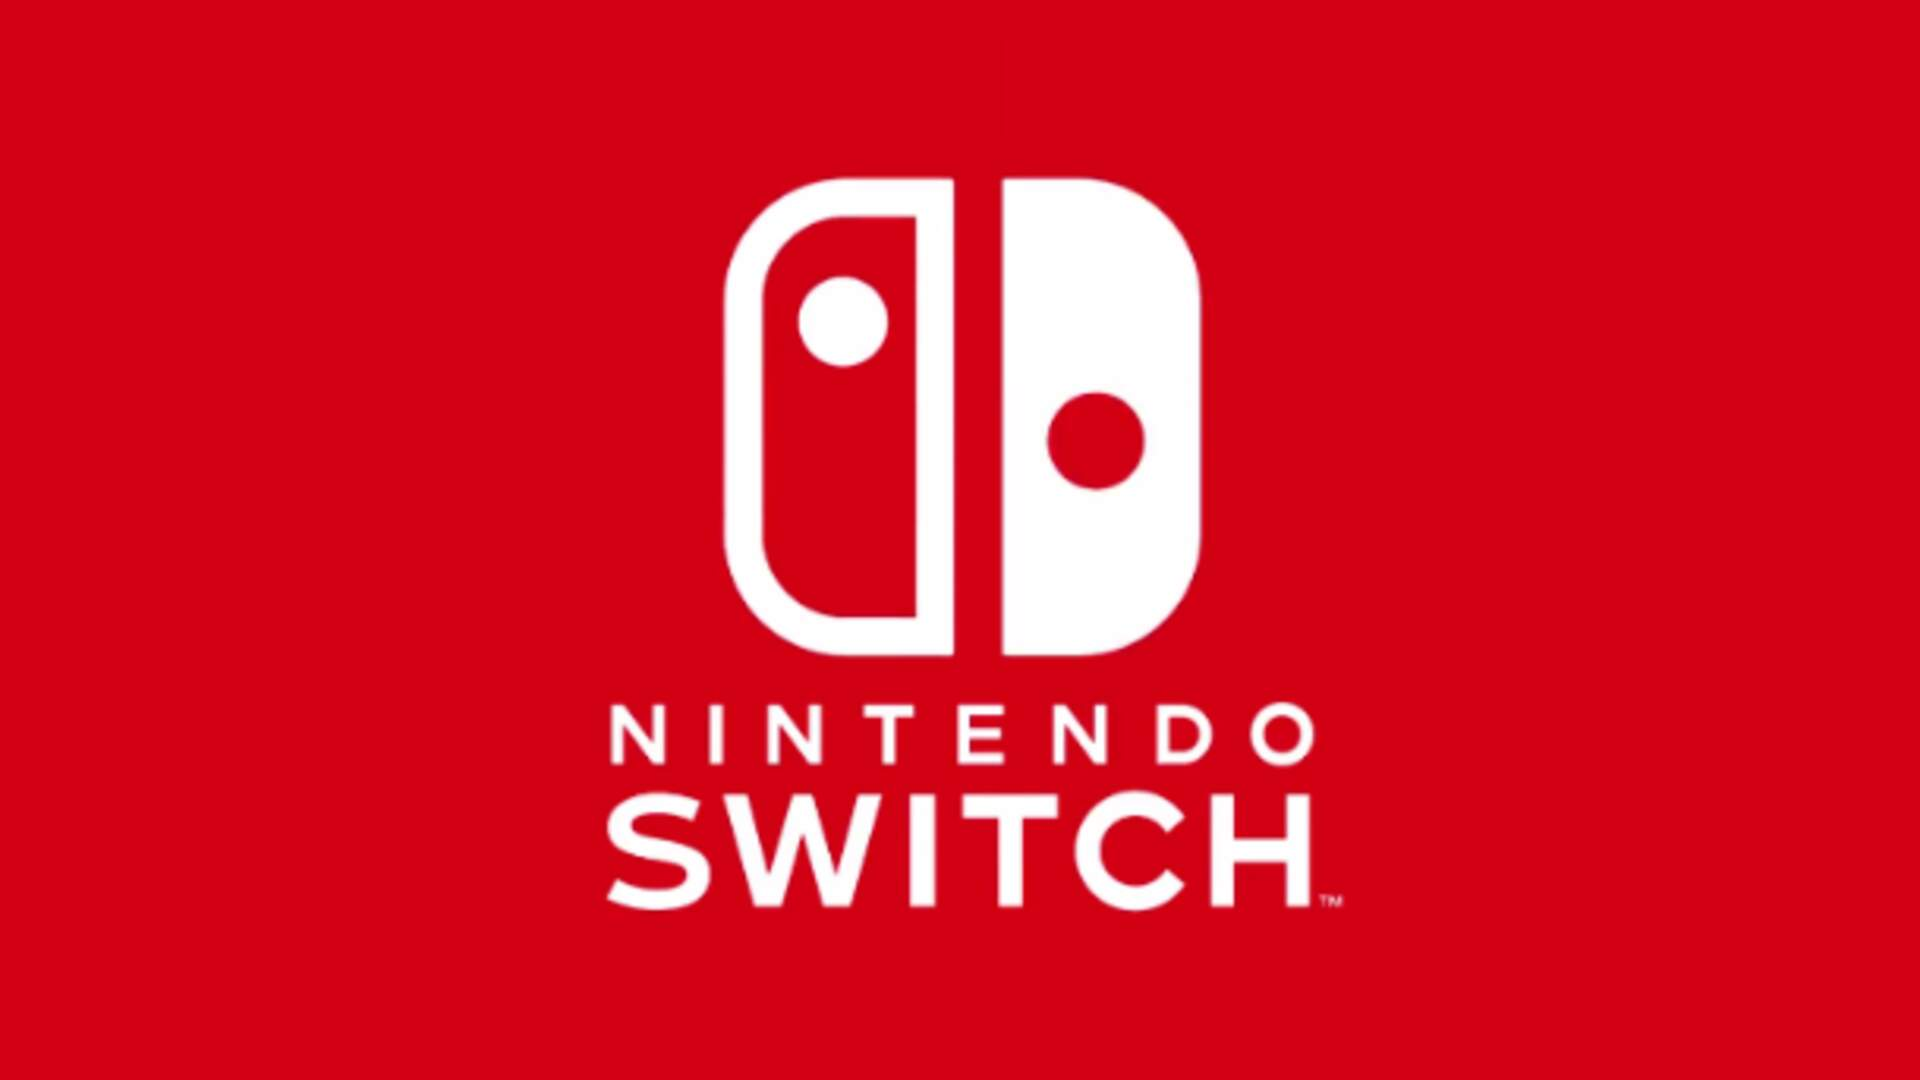 Watch The Nintendo Switch Presentation With Mike at 11pm ET/8PM PT